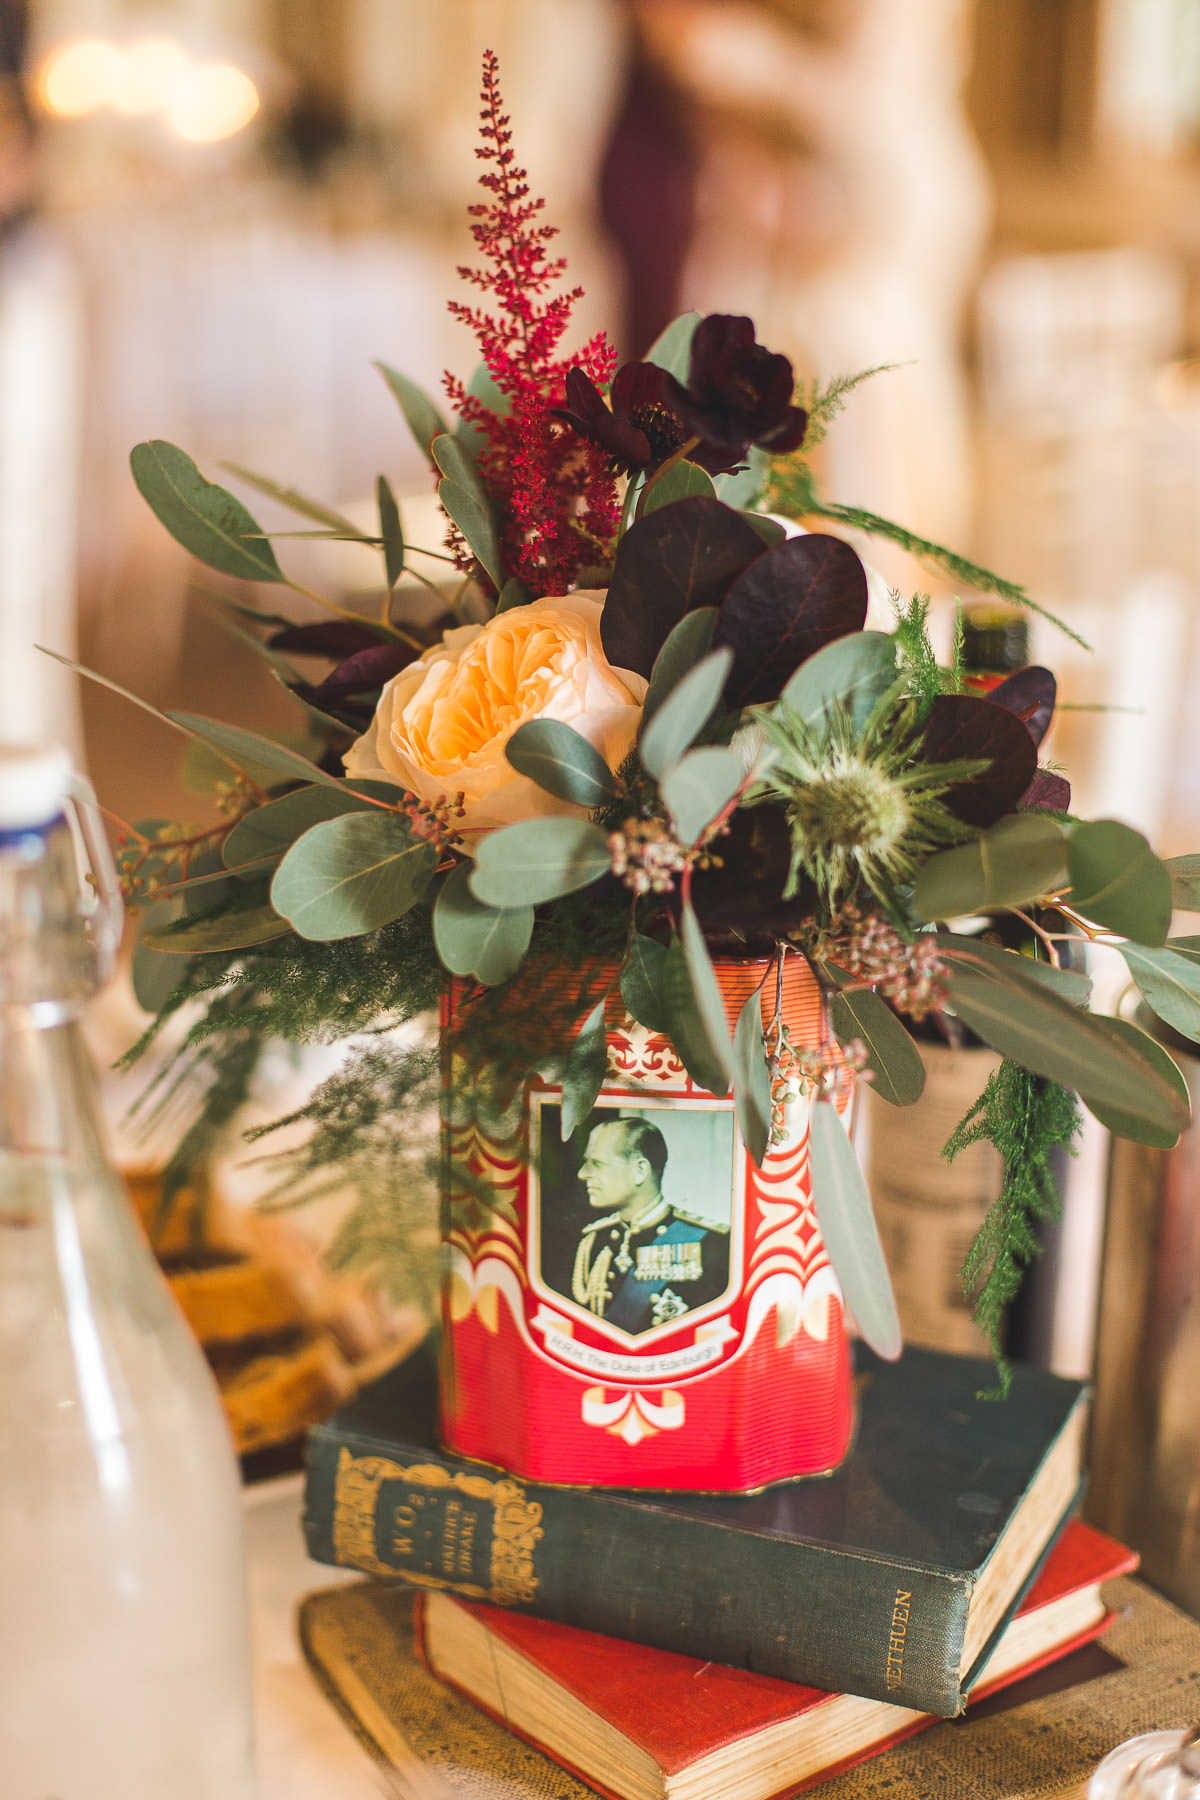 Cain Manor, colour pop wedding, Colourful wedding, Creative Wedding, curry favors, fusion wedding, handmade stationery, indian wedding, Kirsty Mackenzie photography, multicultural wedding, old tins, retro lighting, rock the manor, wedding balloons